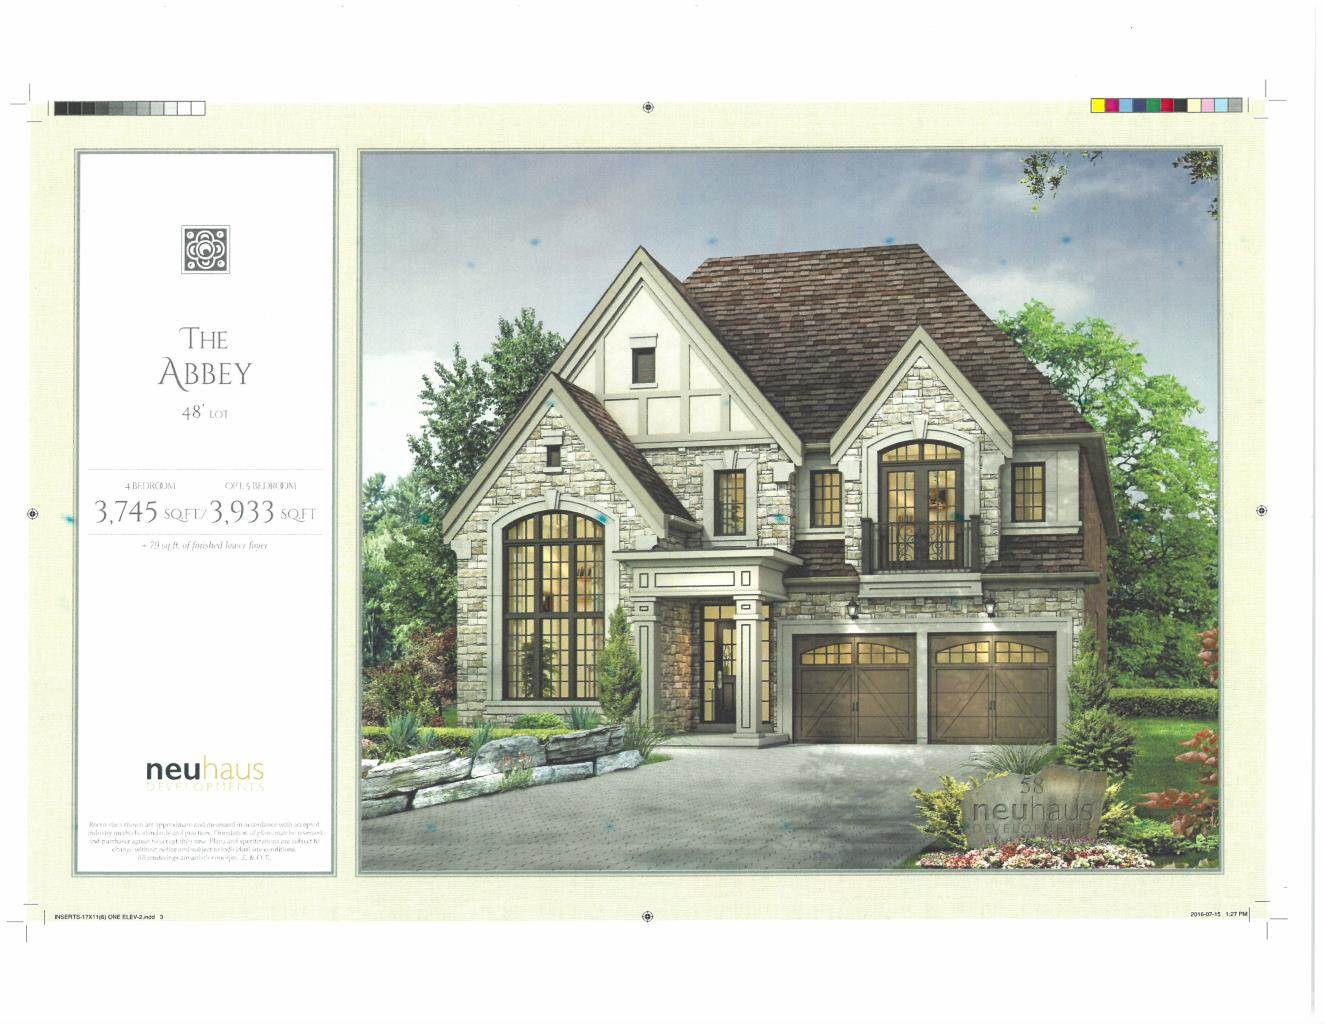 Residencial à venda em BRAND NEW Custom Home in Richmond Hill (3,745 sq.ft.), RICHMOND HILL, Ontario ,L4C 4M3  , Canadá